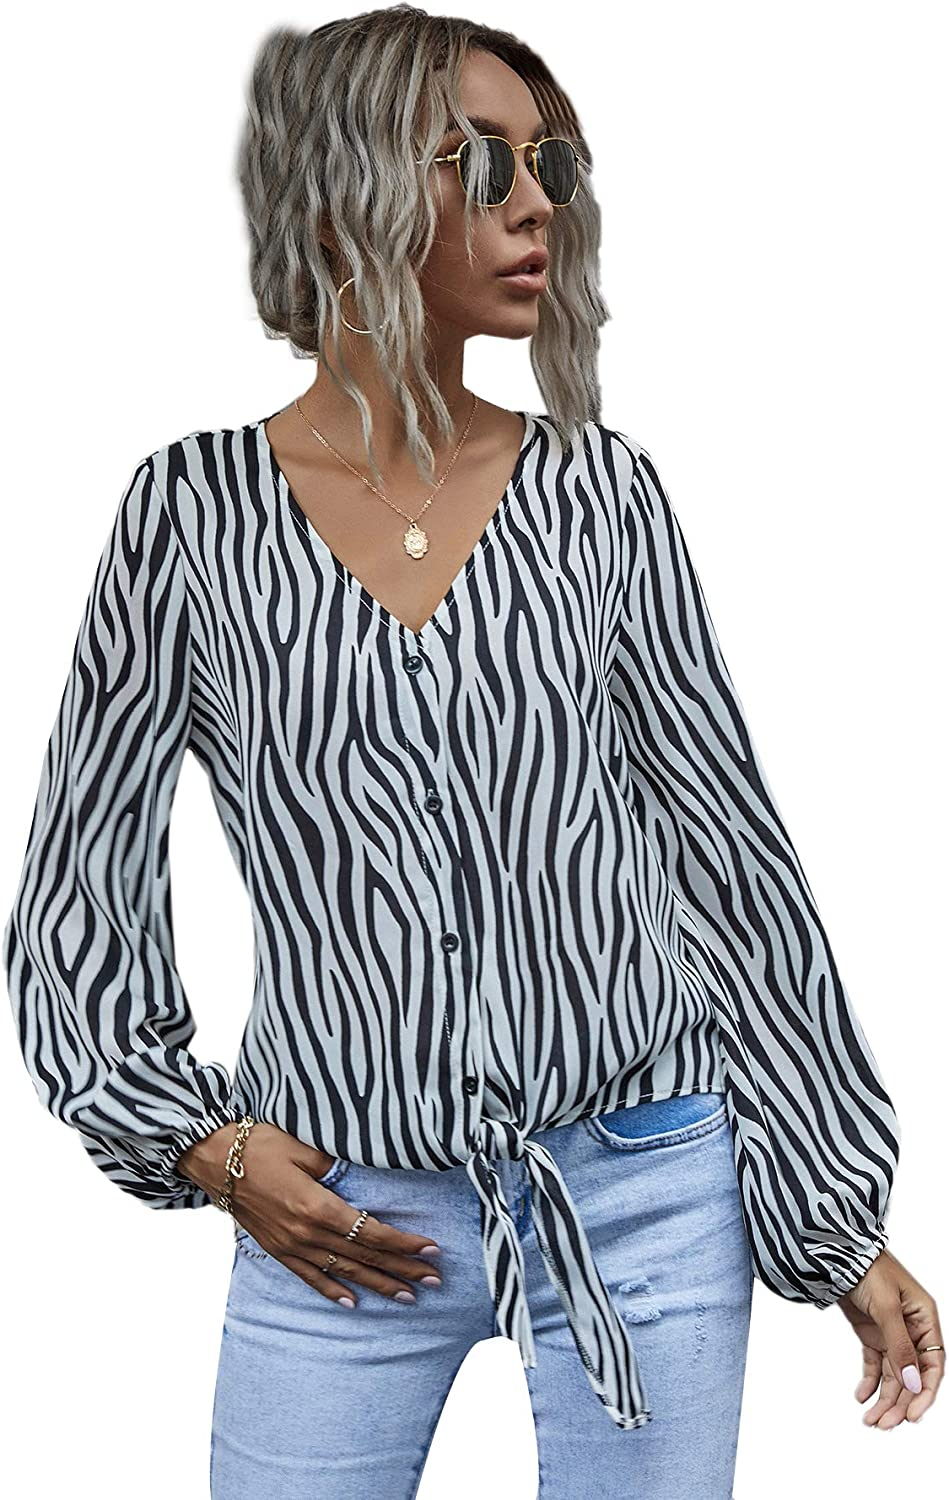 Romwe Women's Zebra Striped Button Down Knot Front Long Sleeve Casual Blouse Tops Shirts